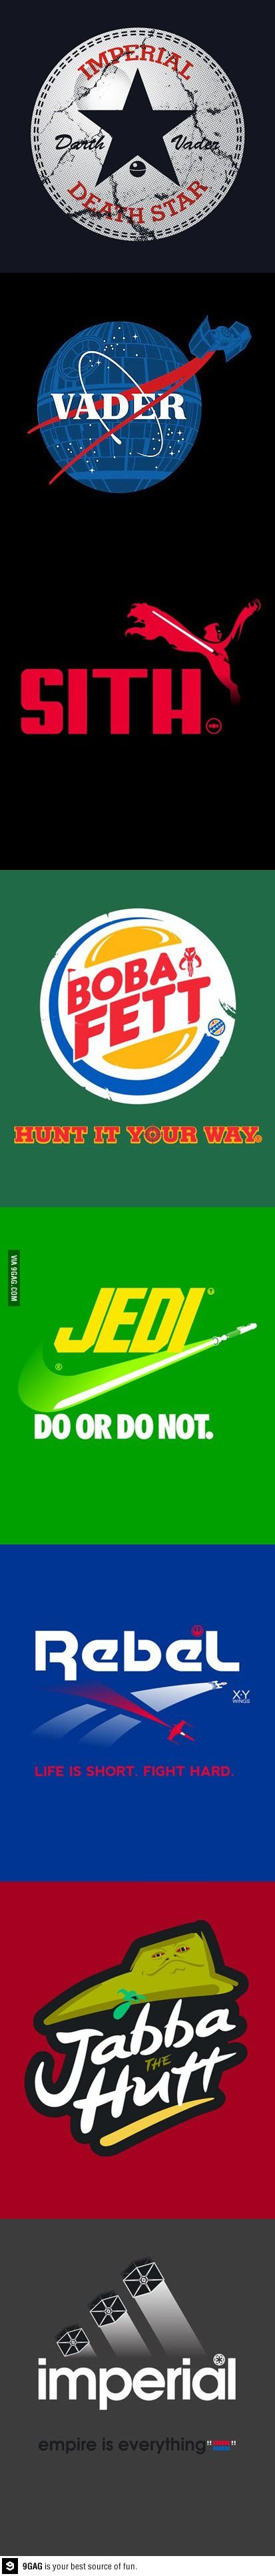 mostly food logo's in the star wars world lol